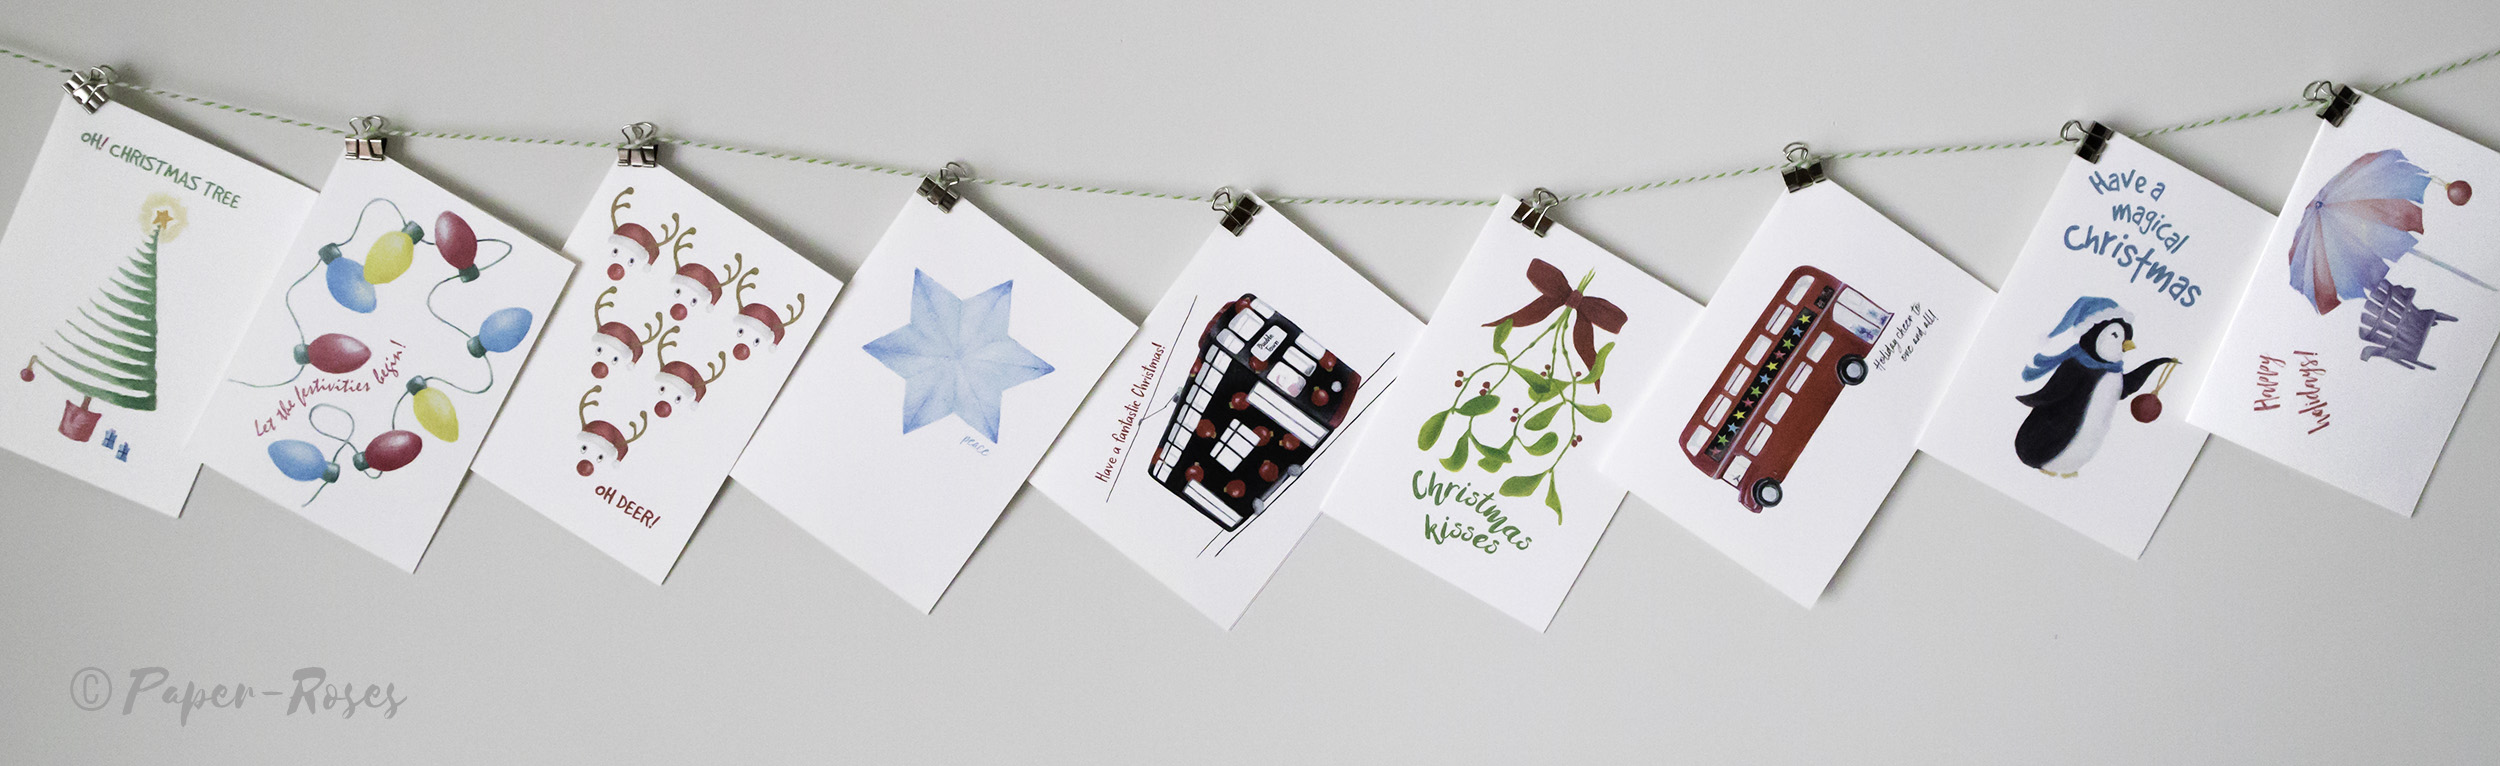 Paper-Roses | Festive shop | Greetings cards